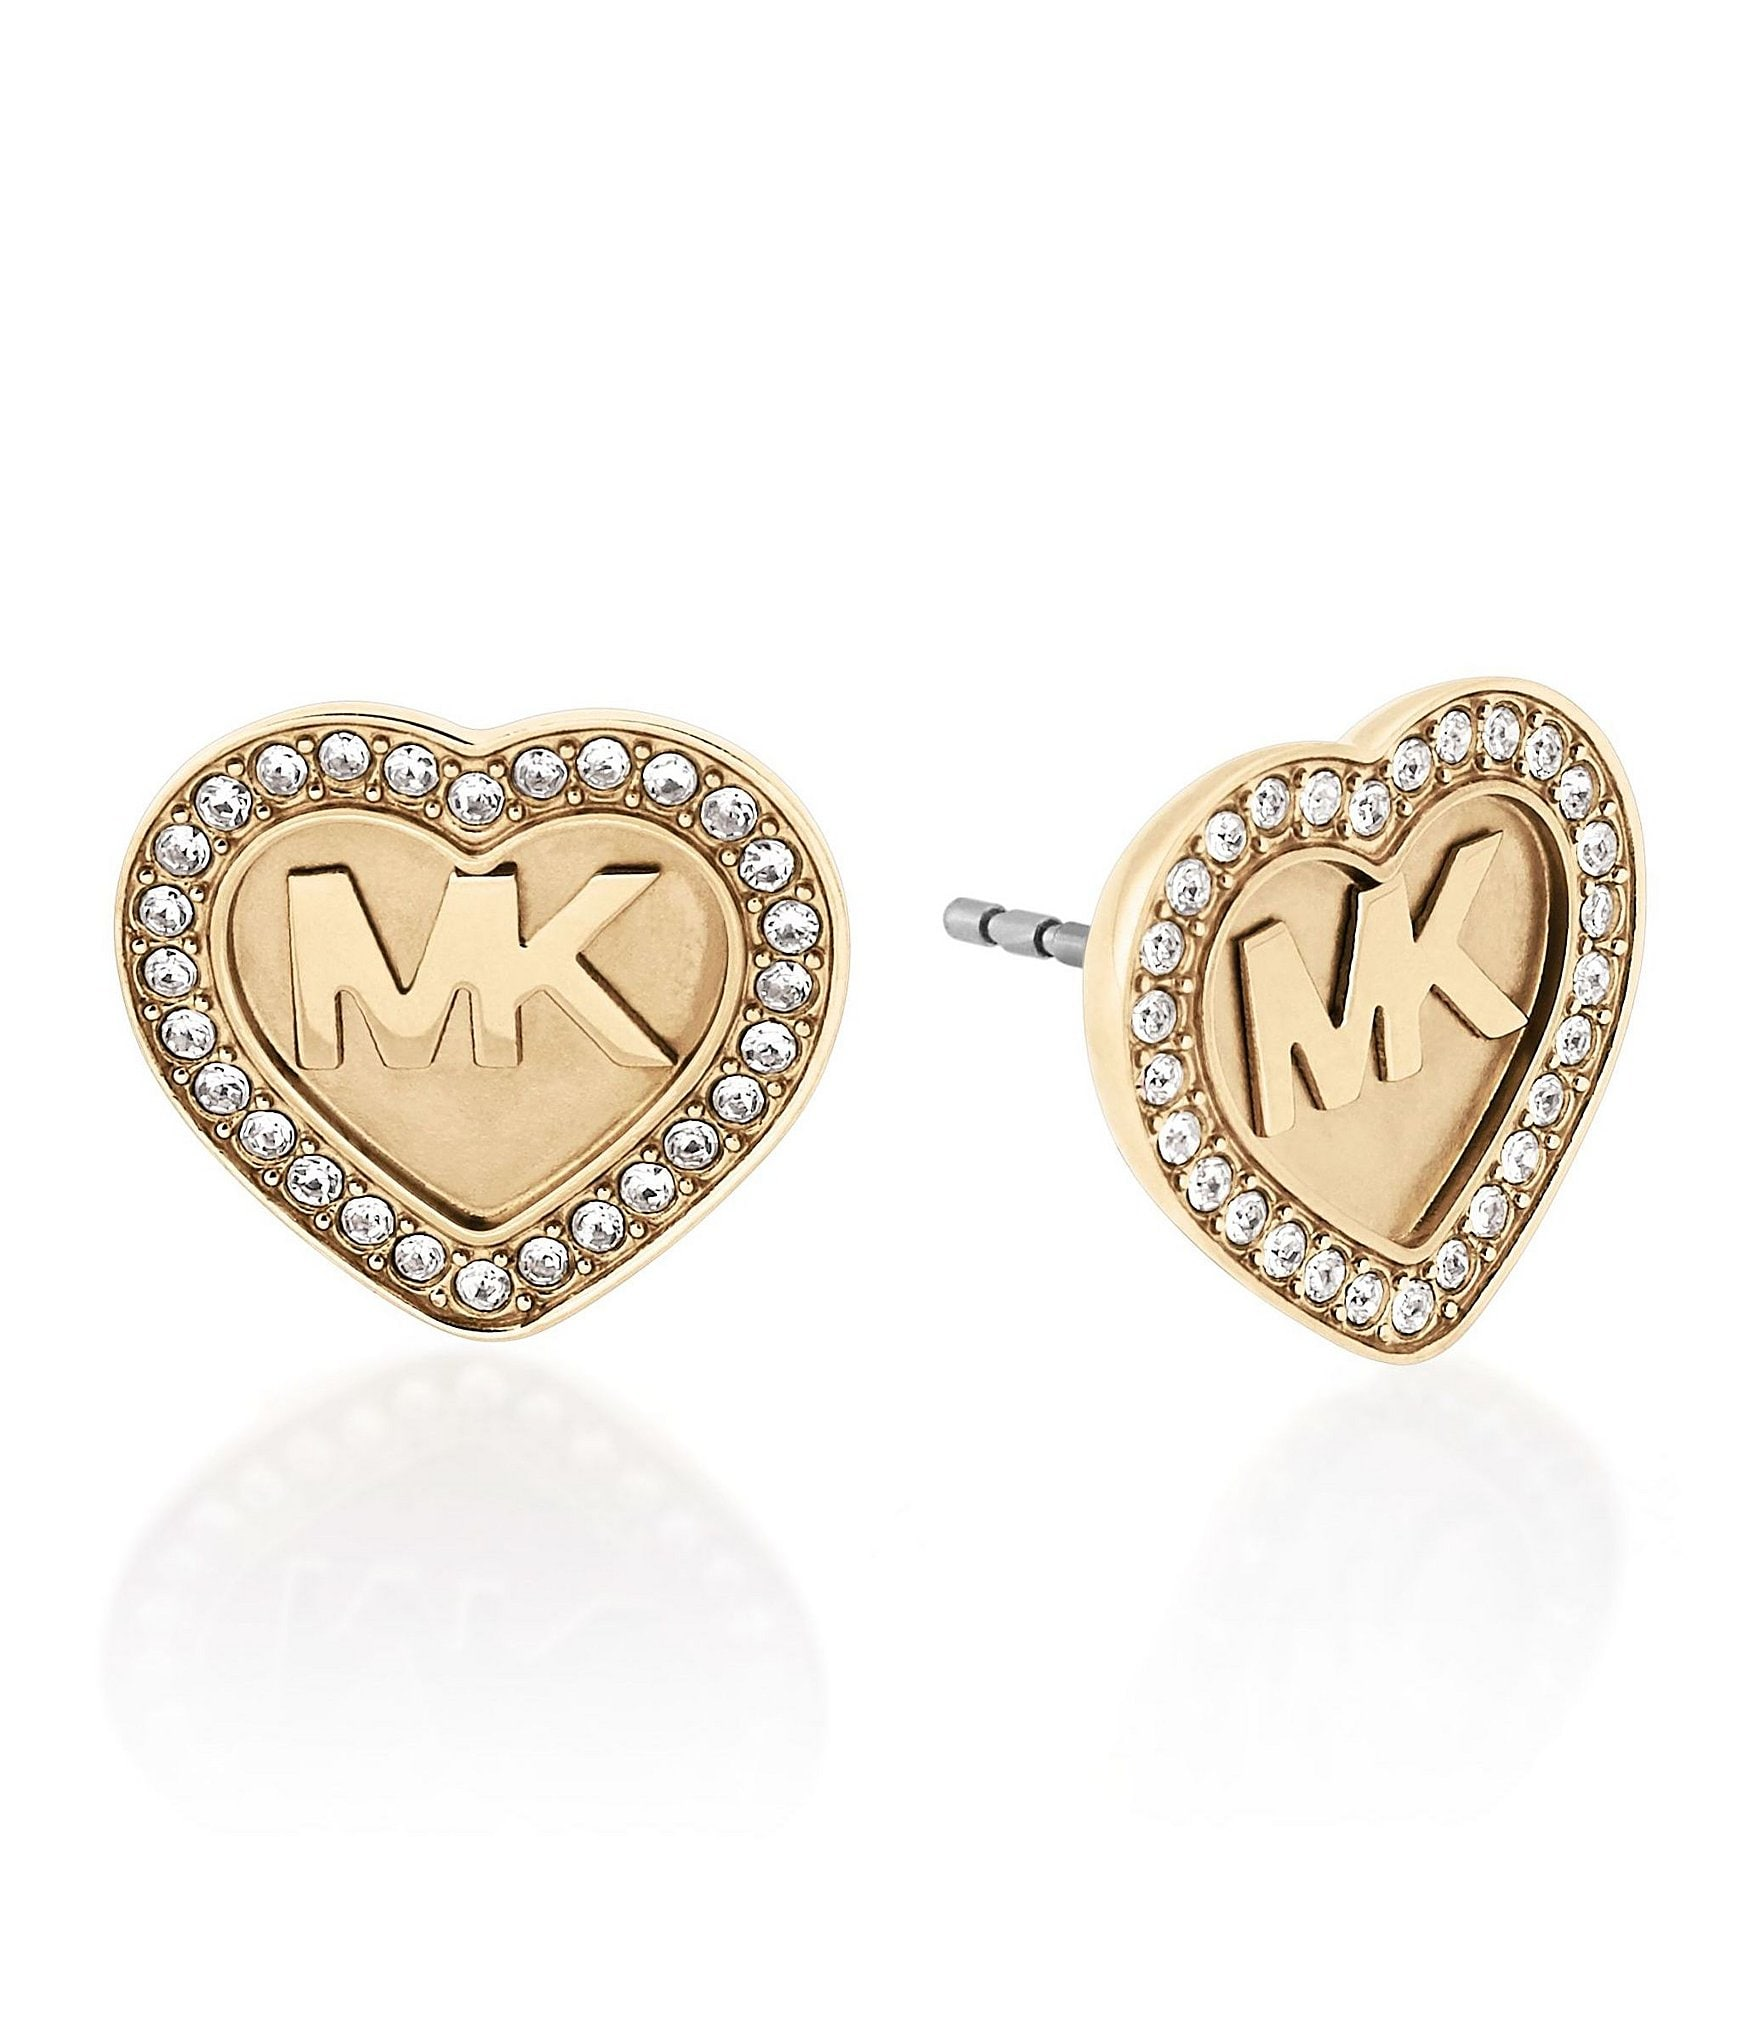 Michael Kors Accessories Jewelry